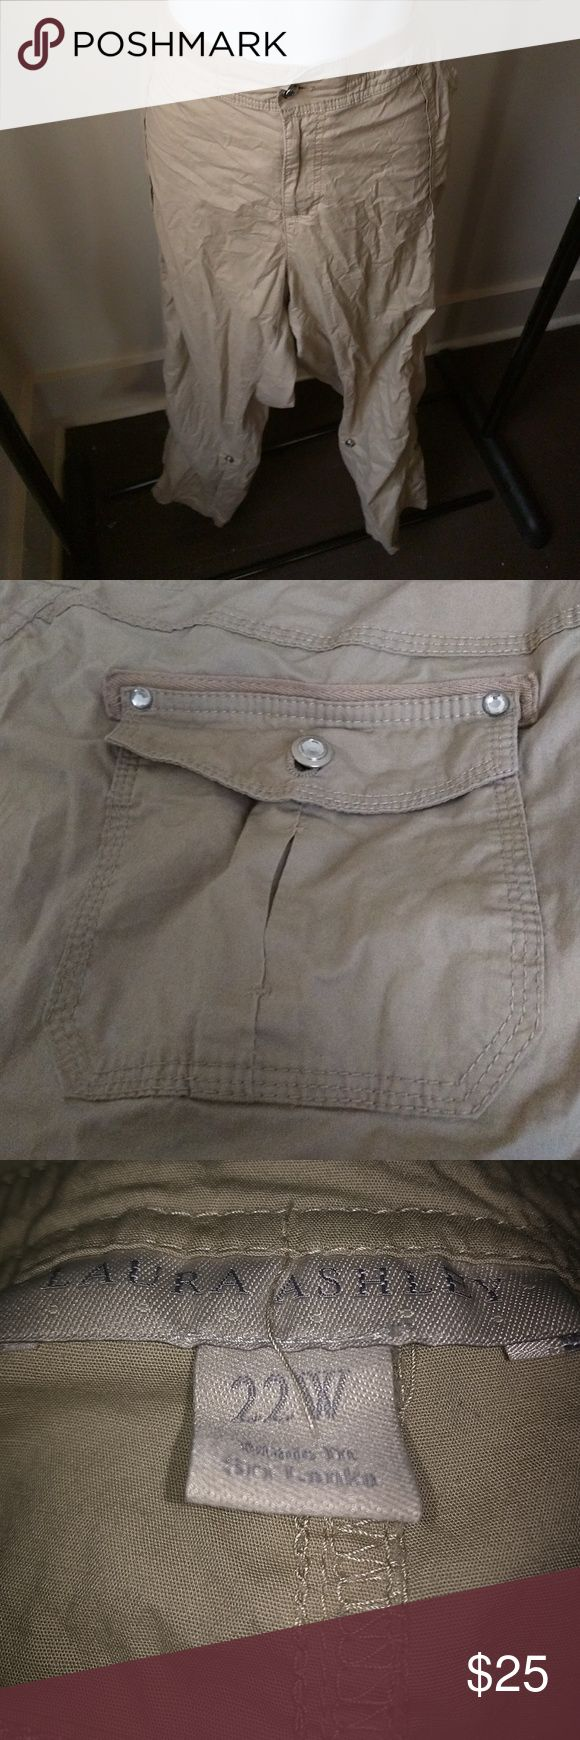 Plus size khaki cargo pants. Crystal buttons Worn once on safari. Excellent condition. Accepting reasonable offers Laura Ashley Pants Straight Leg